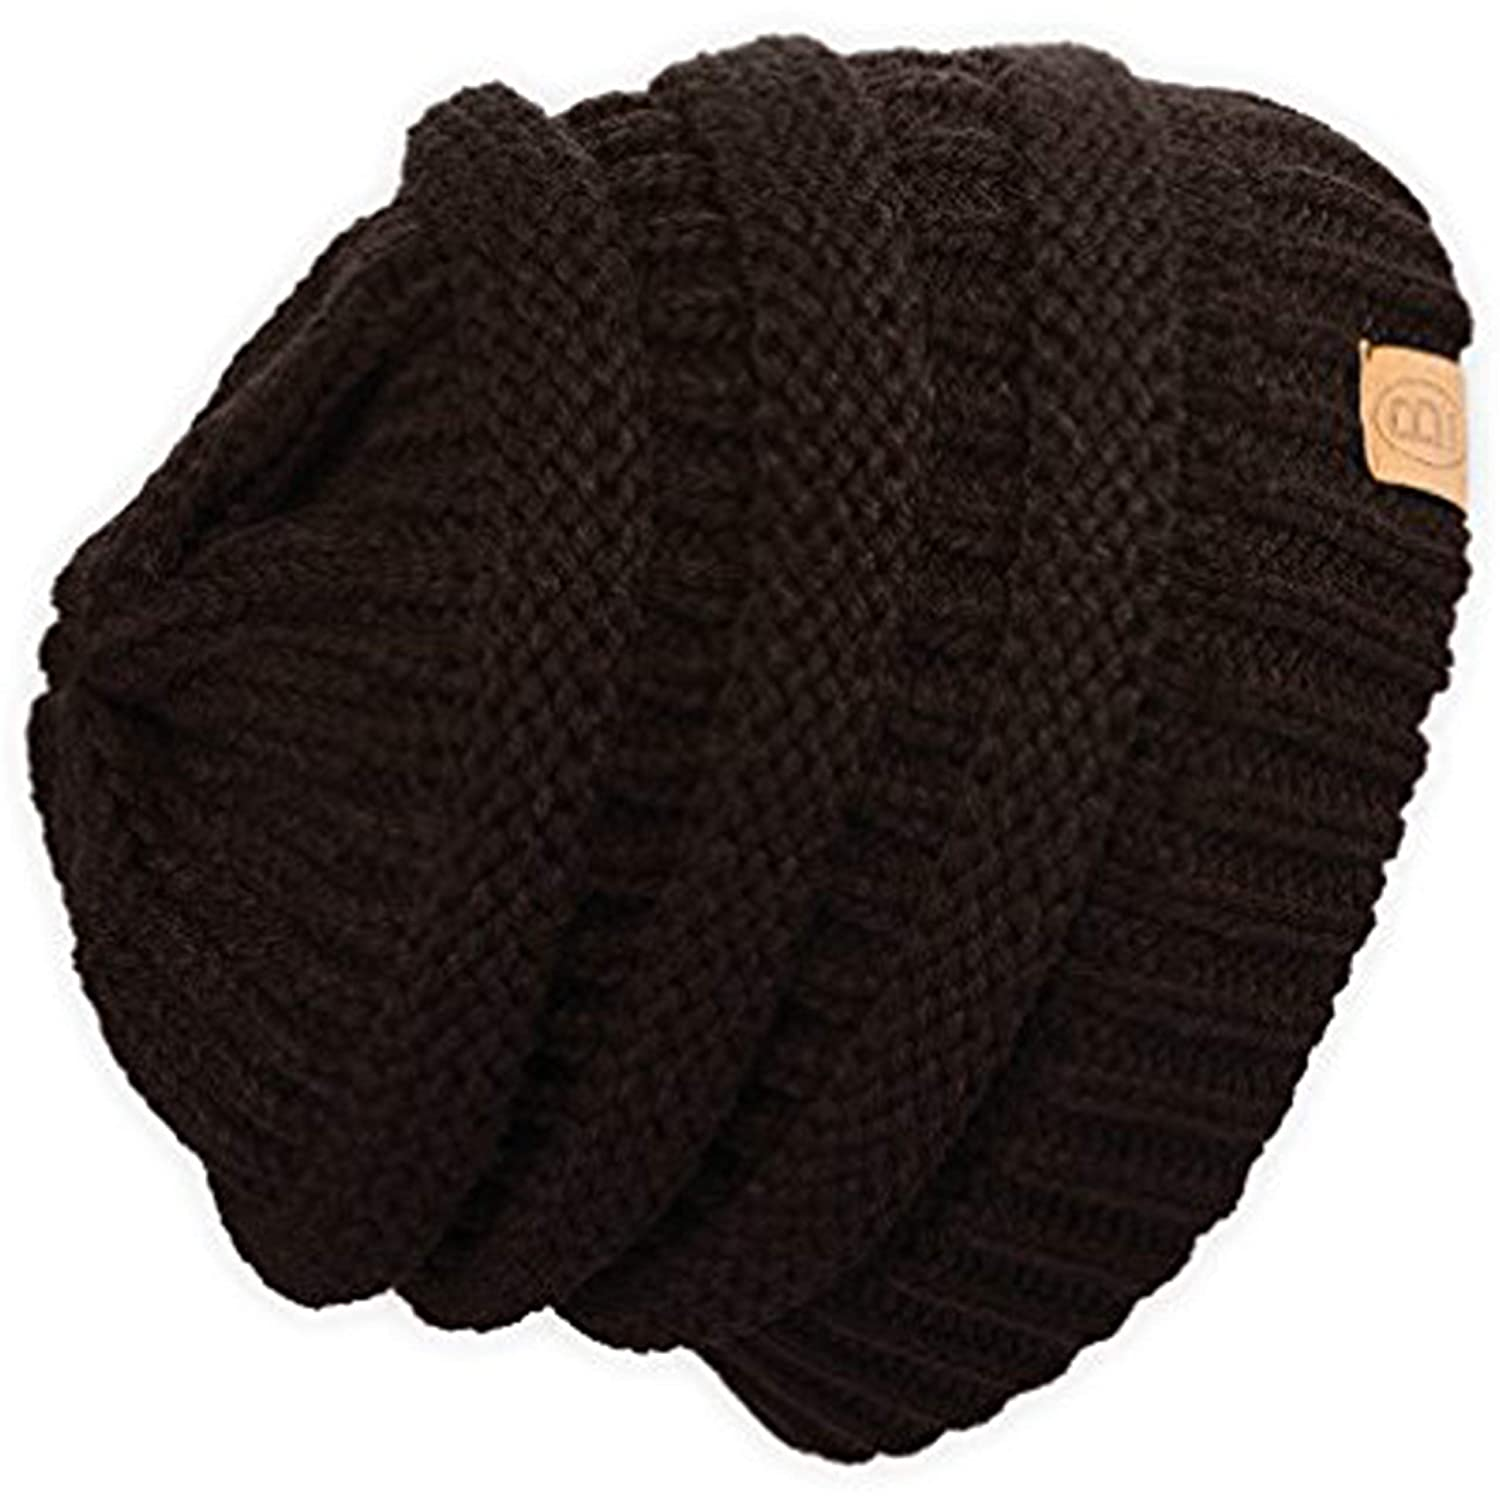 Unisex Adult Winter Warm Chunky Soft Stretch Cable Knit Beanie Cap Ski Hat